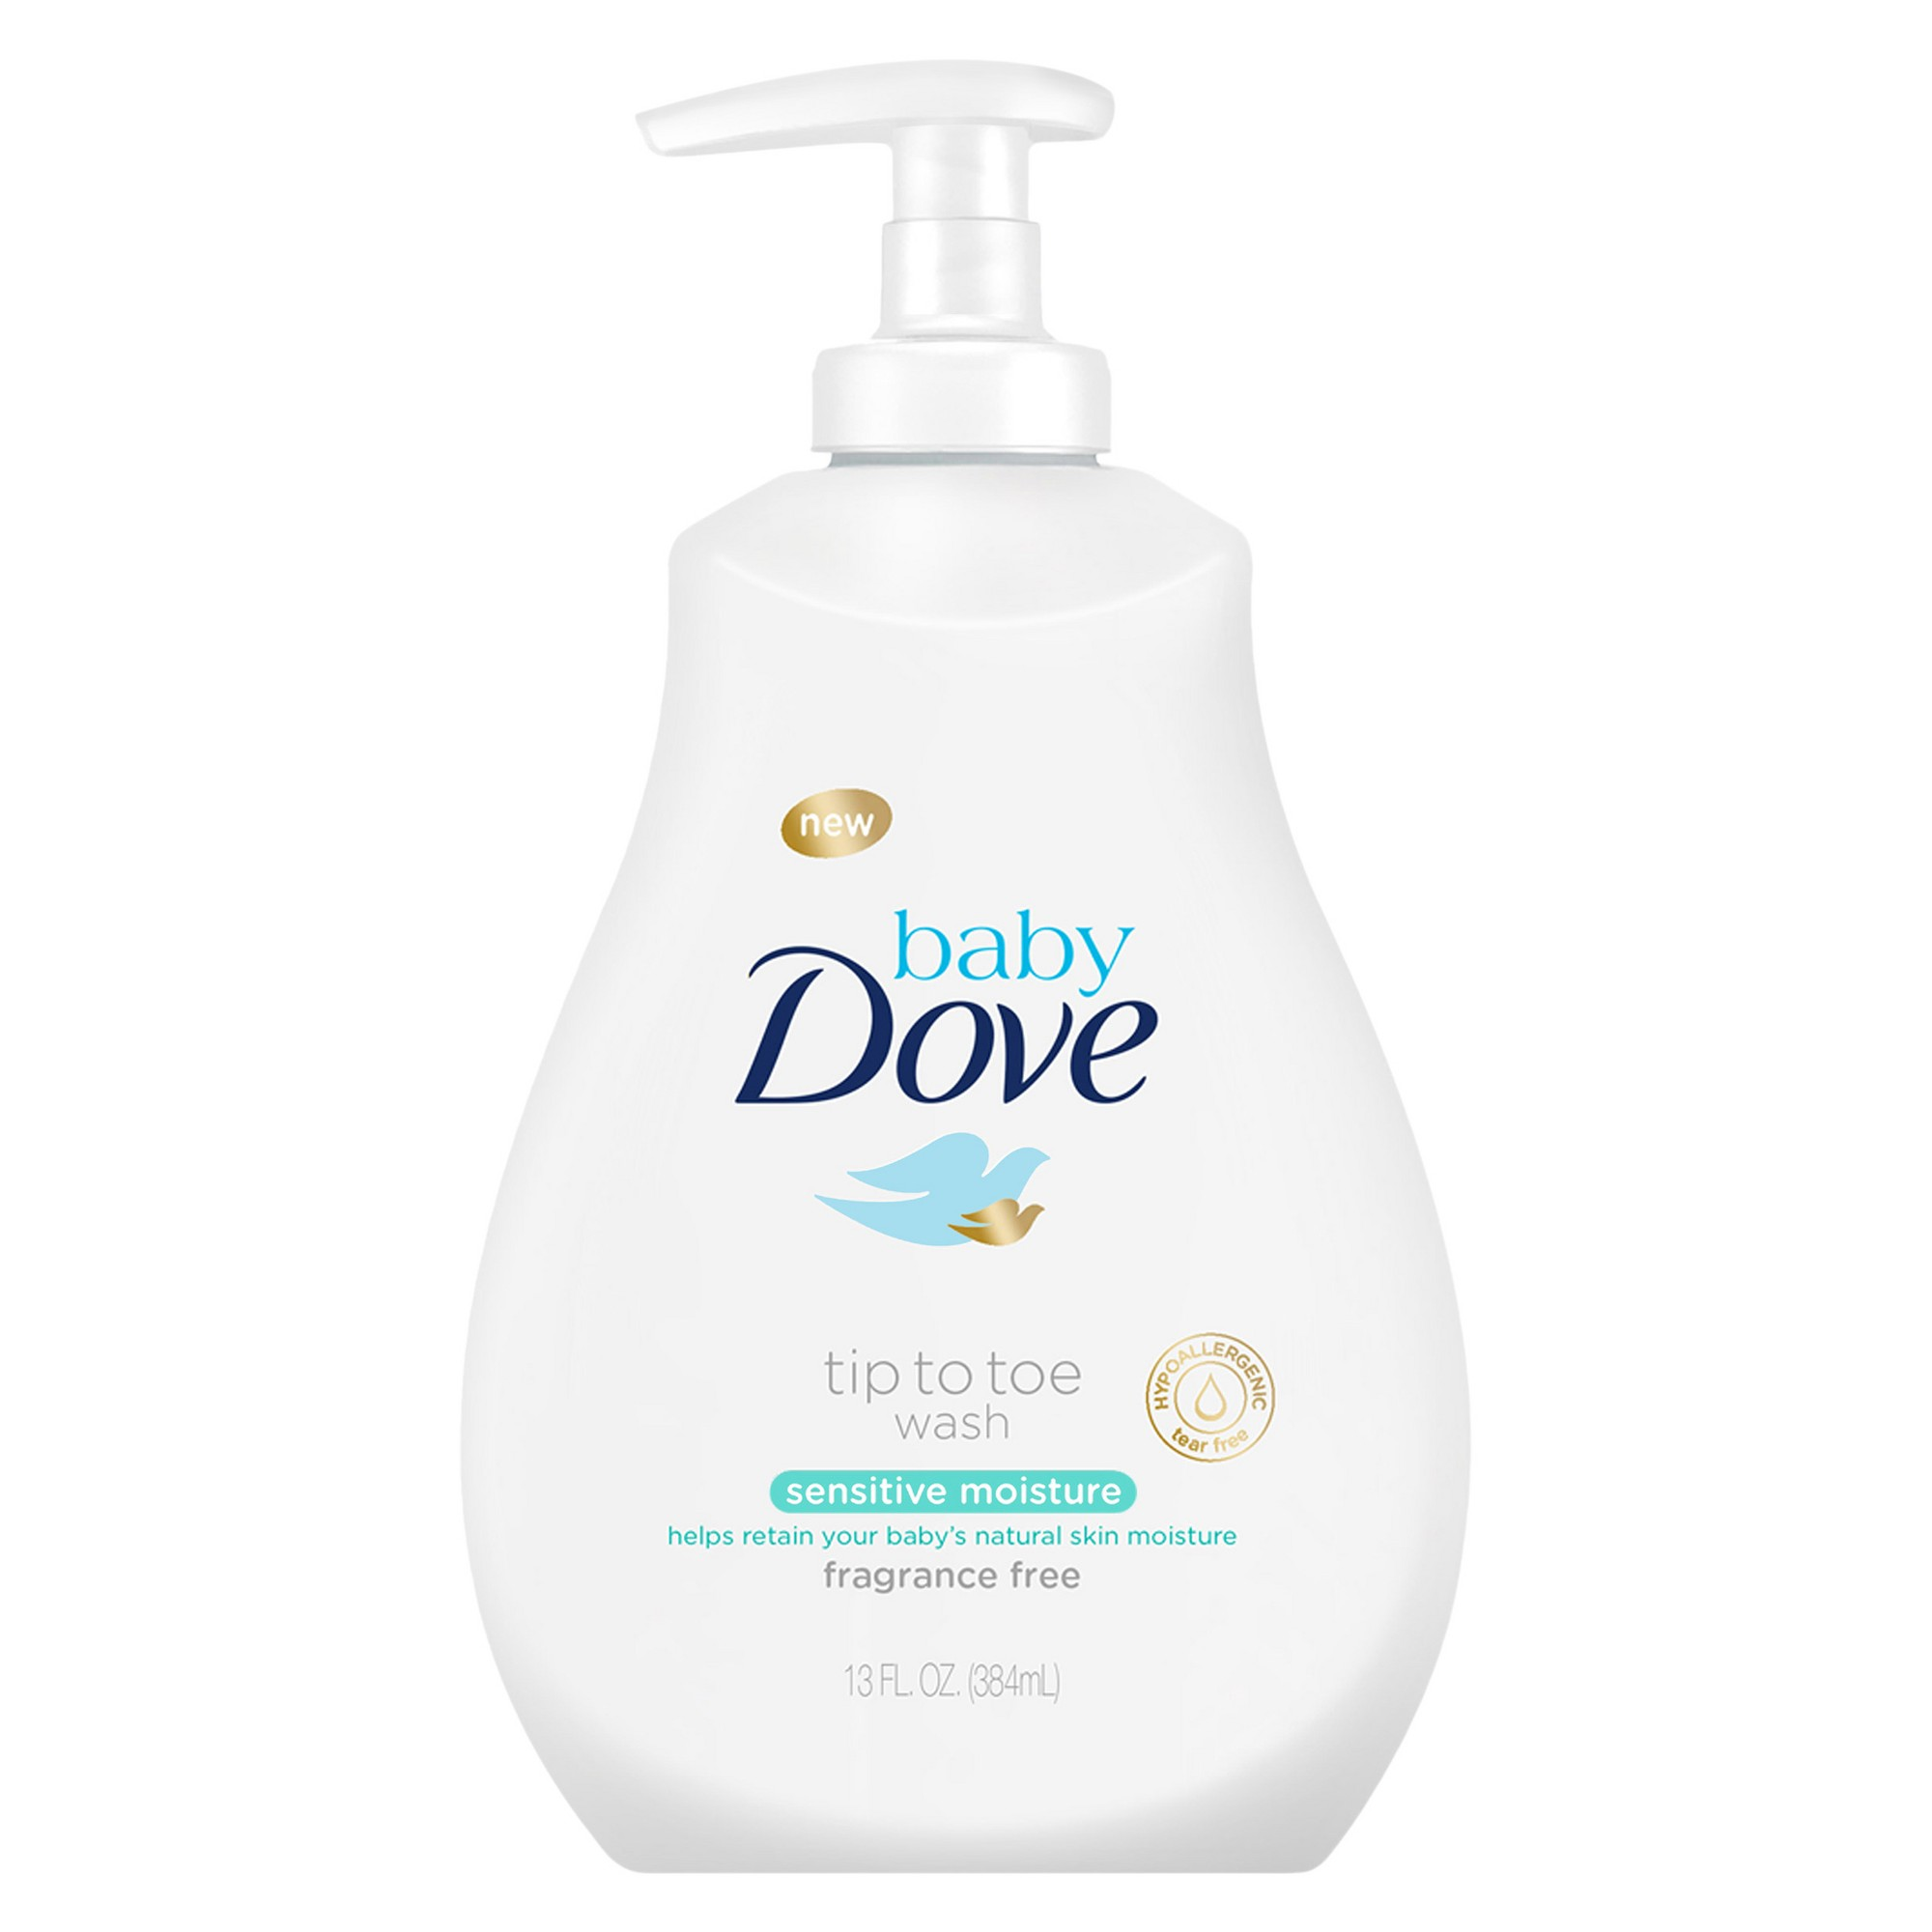 Baby Dove Sensitive Moisture Tip To Toe Fragrance Free Wash 13oz Baby Body Wash Fragrance Free Products Baby Sensitive Skin